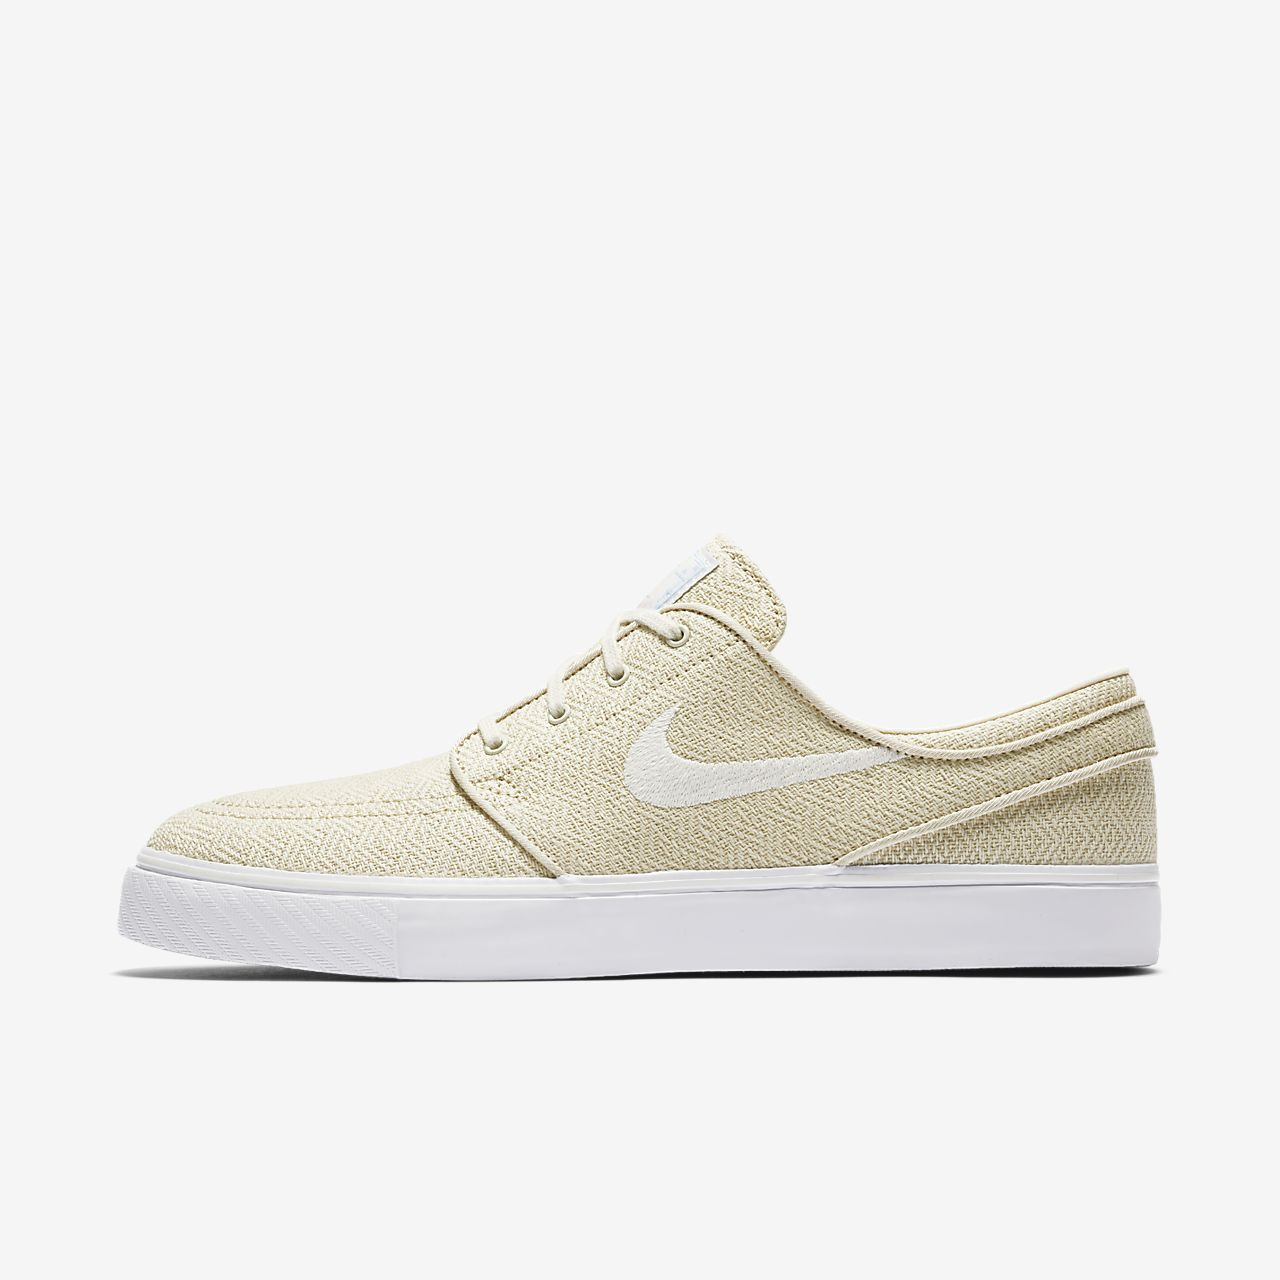 ... Nike SB Zoom Stefan Janoski Canvas Men's Skateboarding Shoe